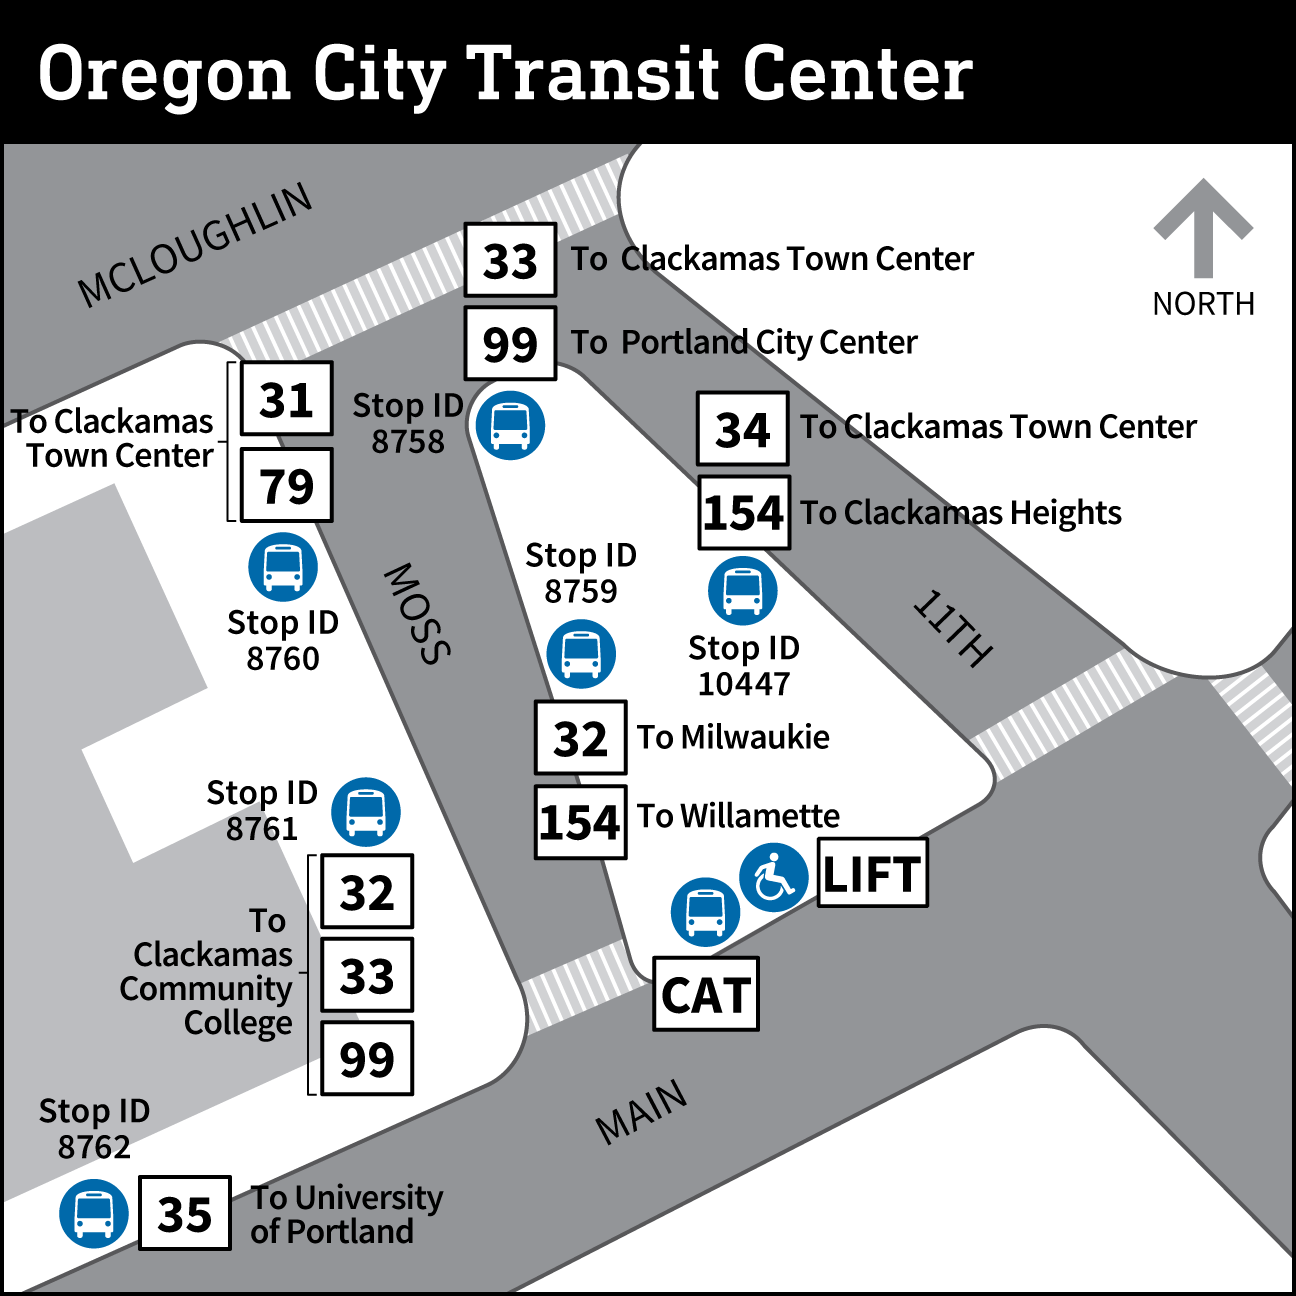 Oregon City Transit Center